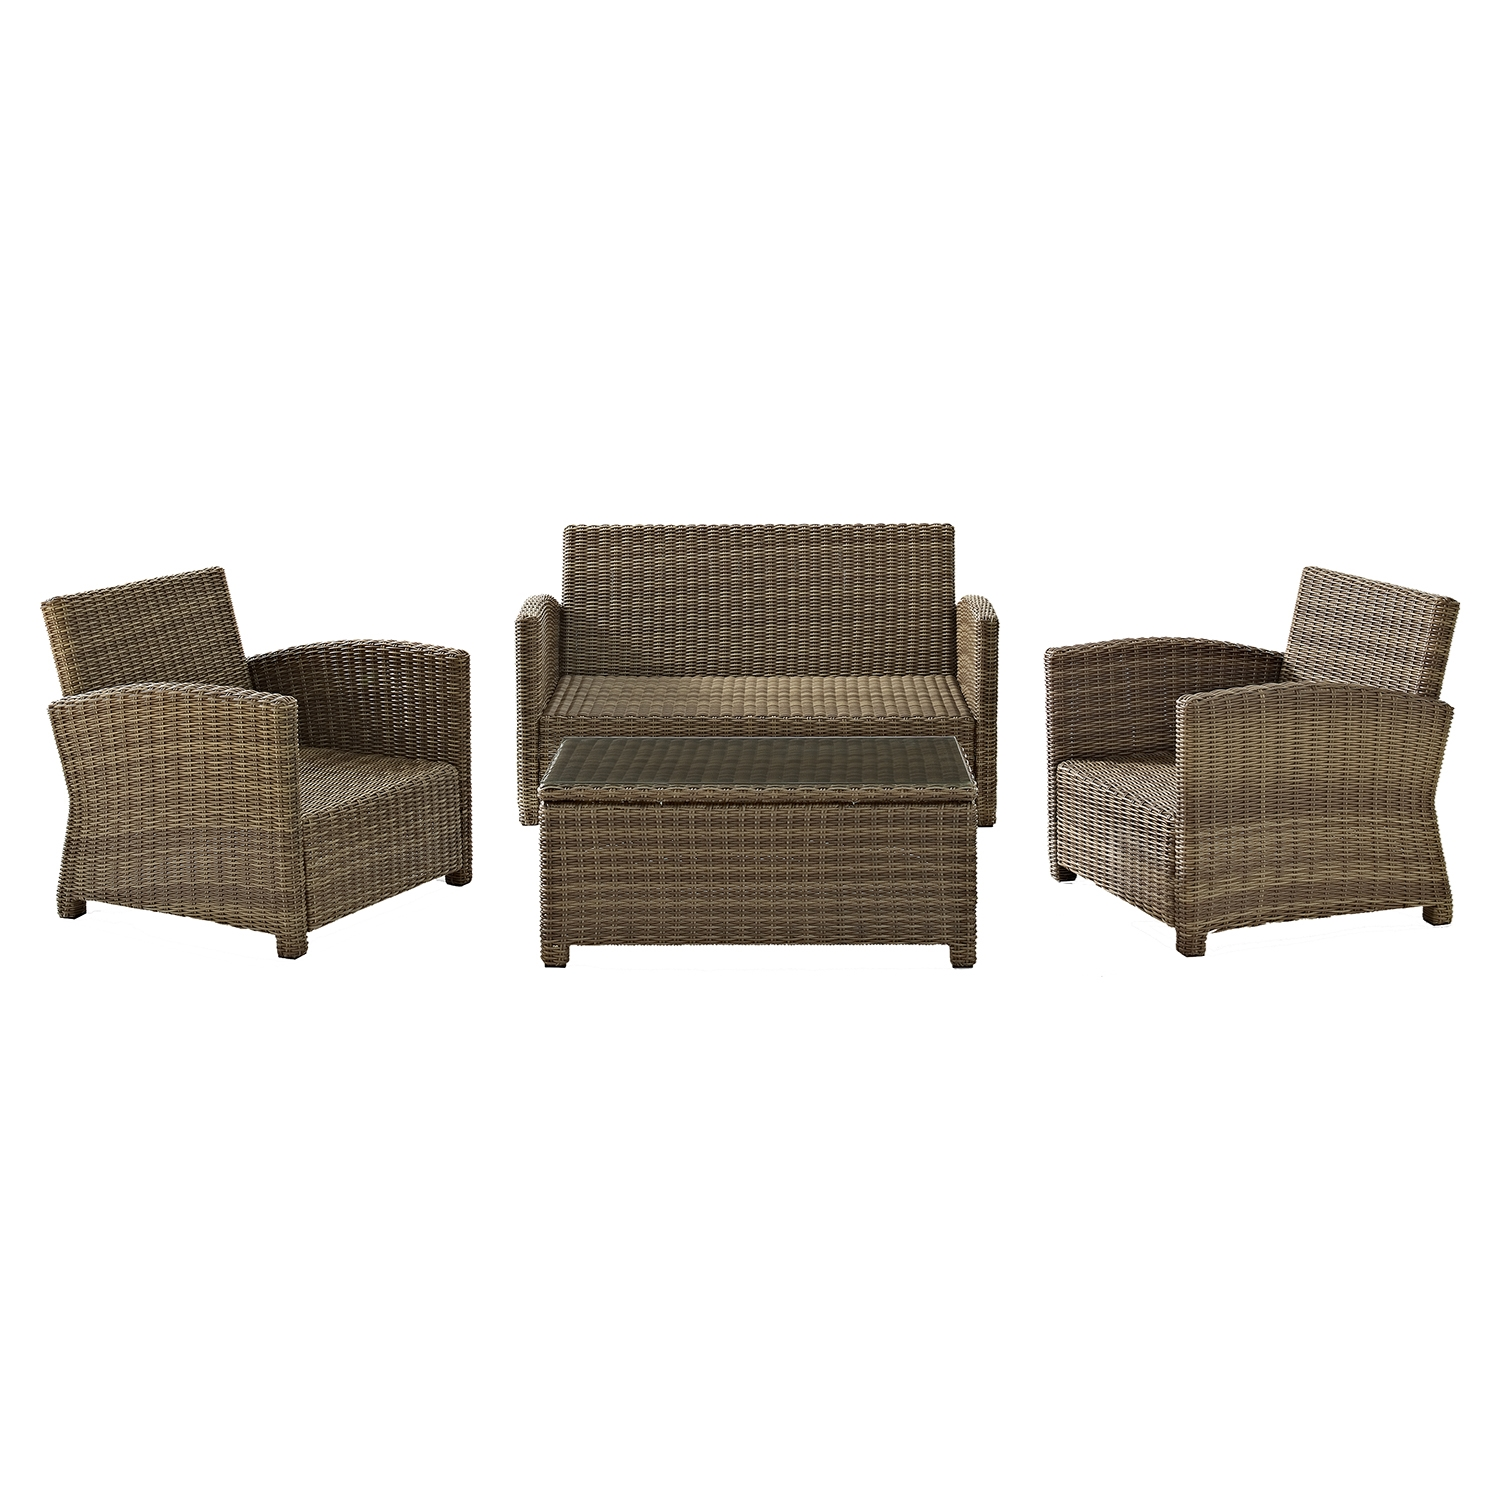 Bradenton 4-Piece Wicker Seating Set - Navy Cushions - CROS-KO70024WB-NV